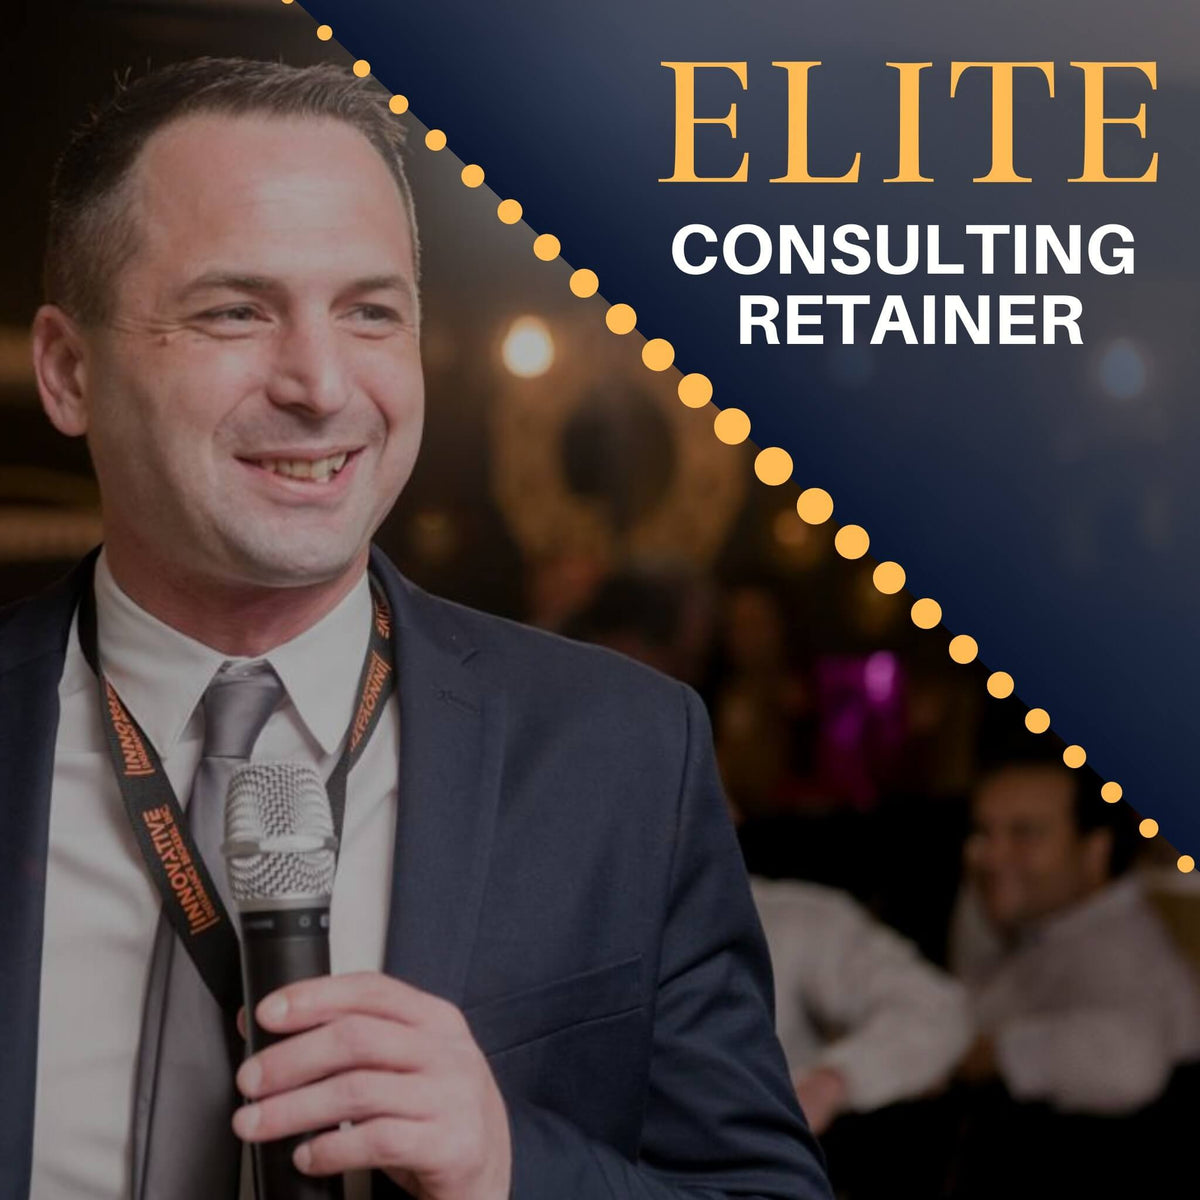 Elite Consulting Retainer